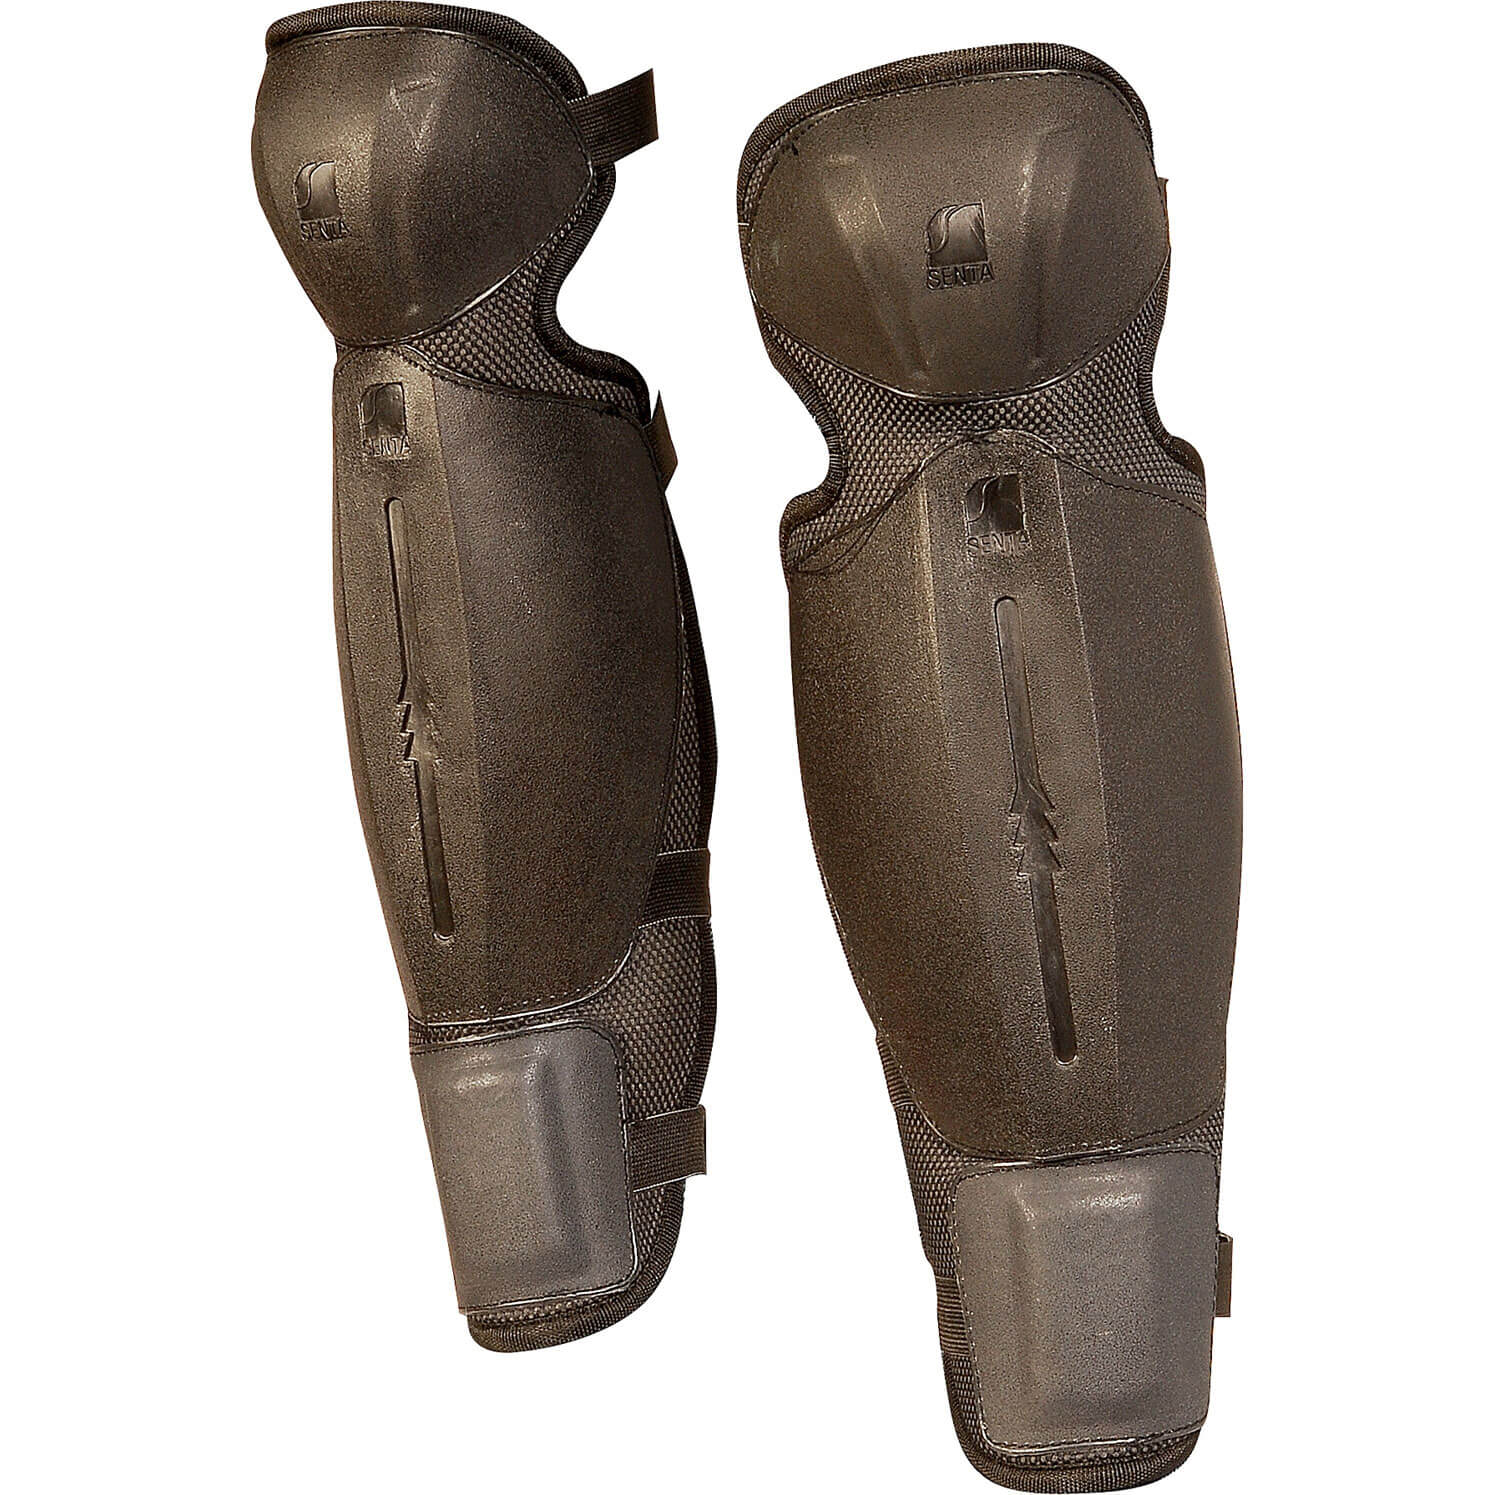 Image of ALM Leg Protectors